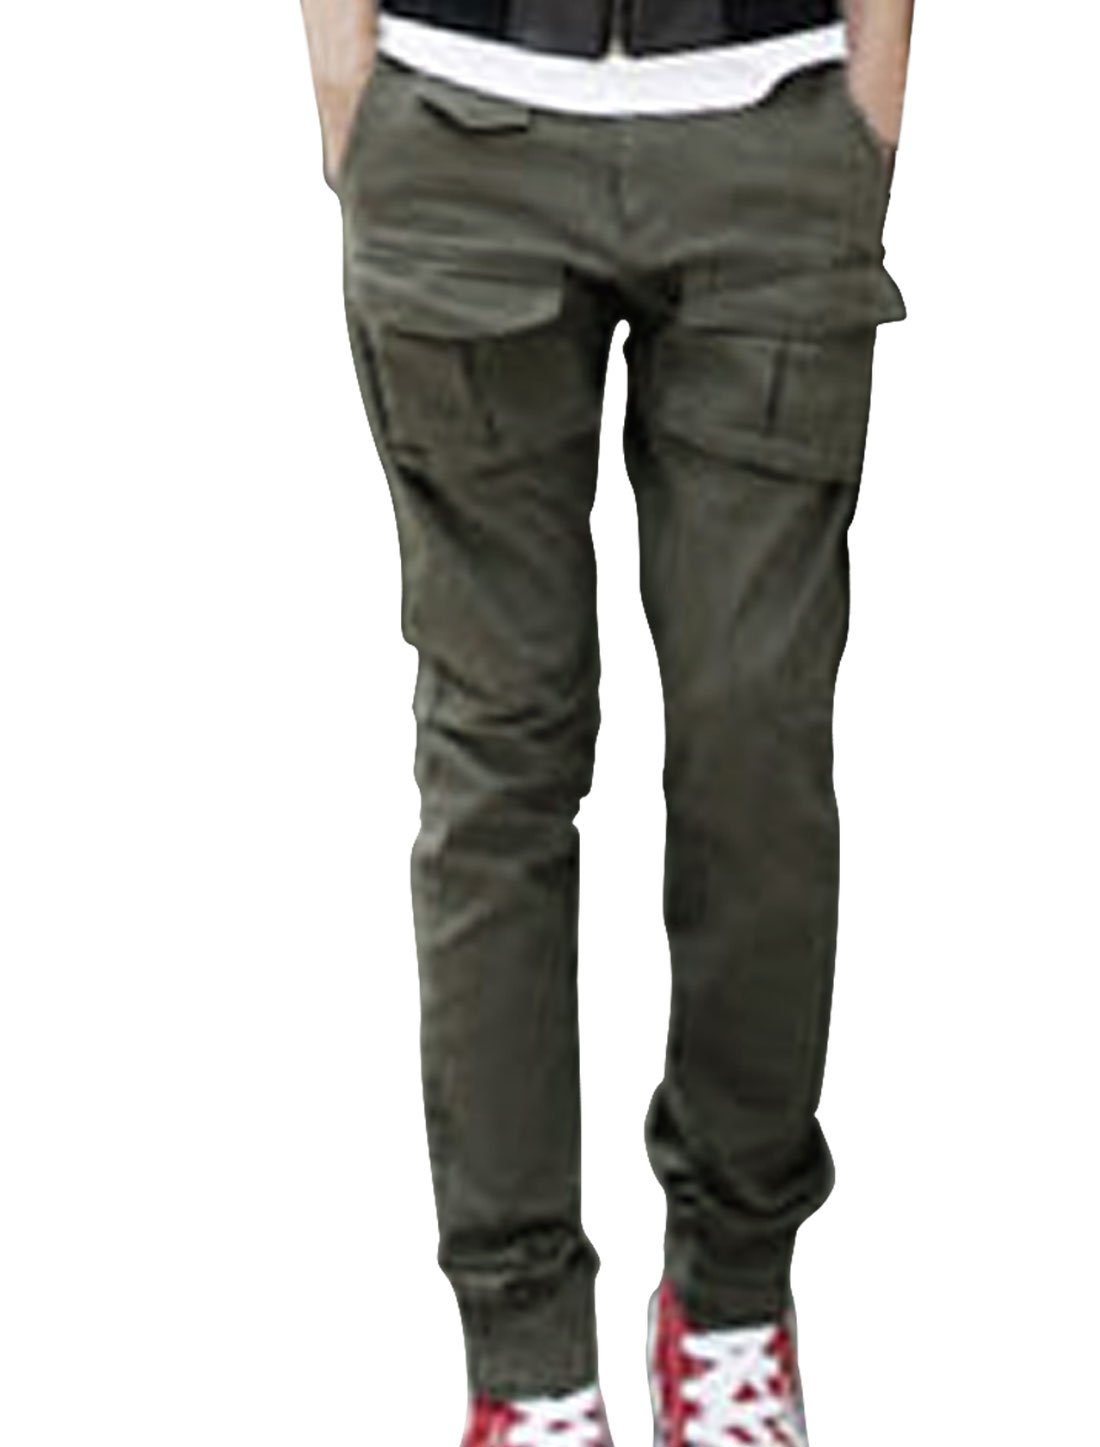 Mens Army Green Natural Waist Multi-Pockets Casual Cargo Pants W31